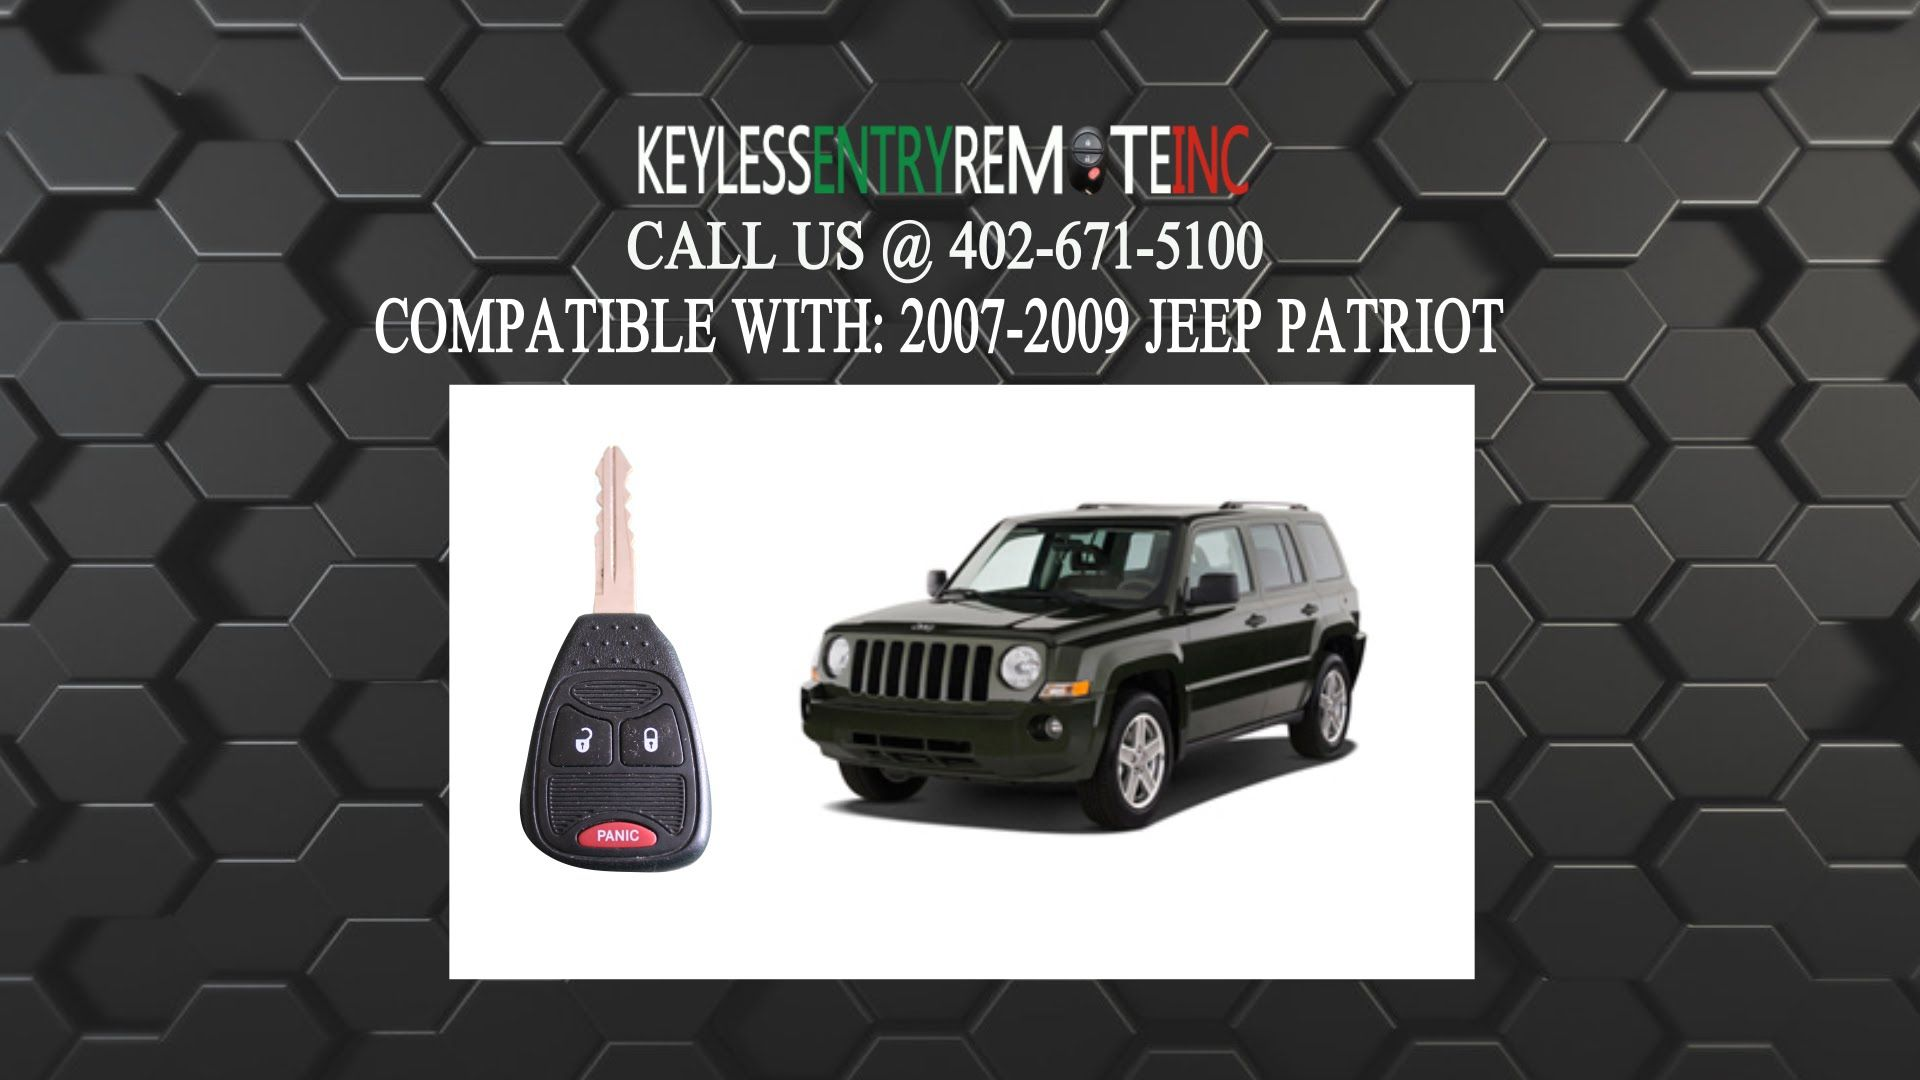 How To Replace Jeep Patriot Key Fob Battery 2007 2012 Jeep Patriot Key Fob Fobs